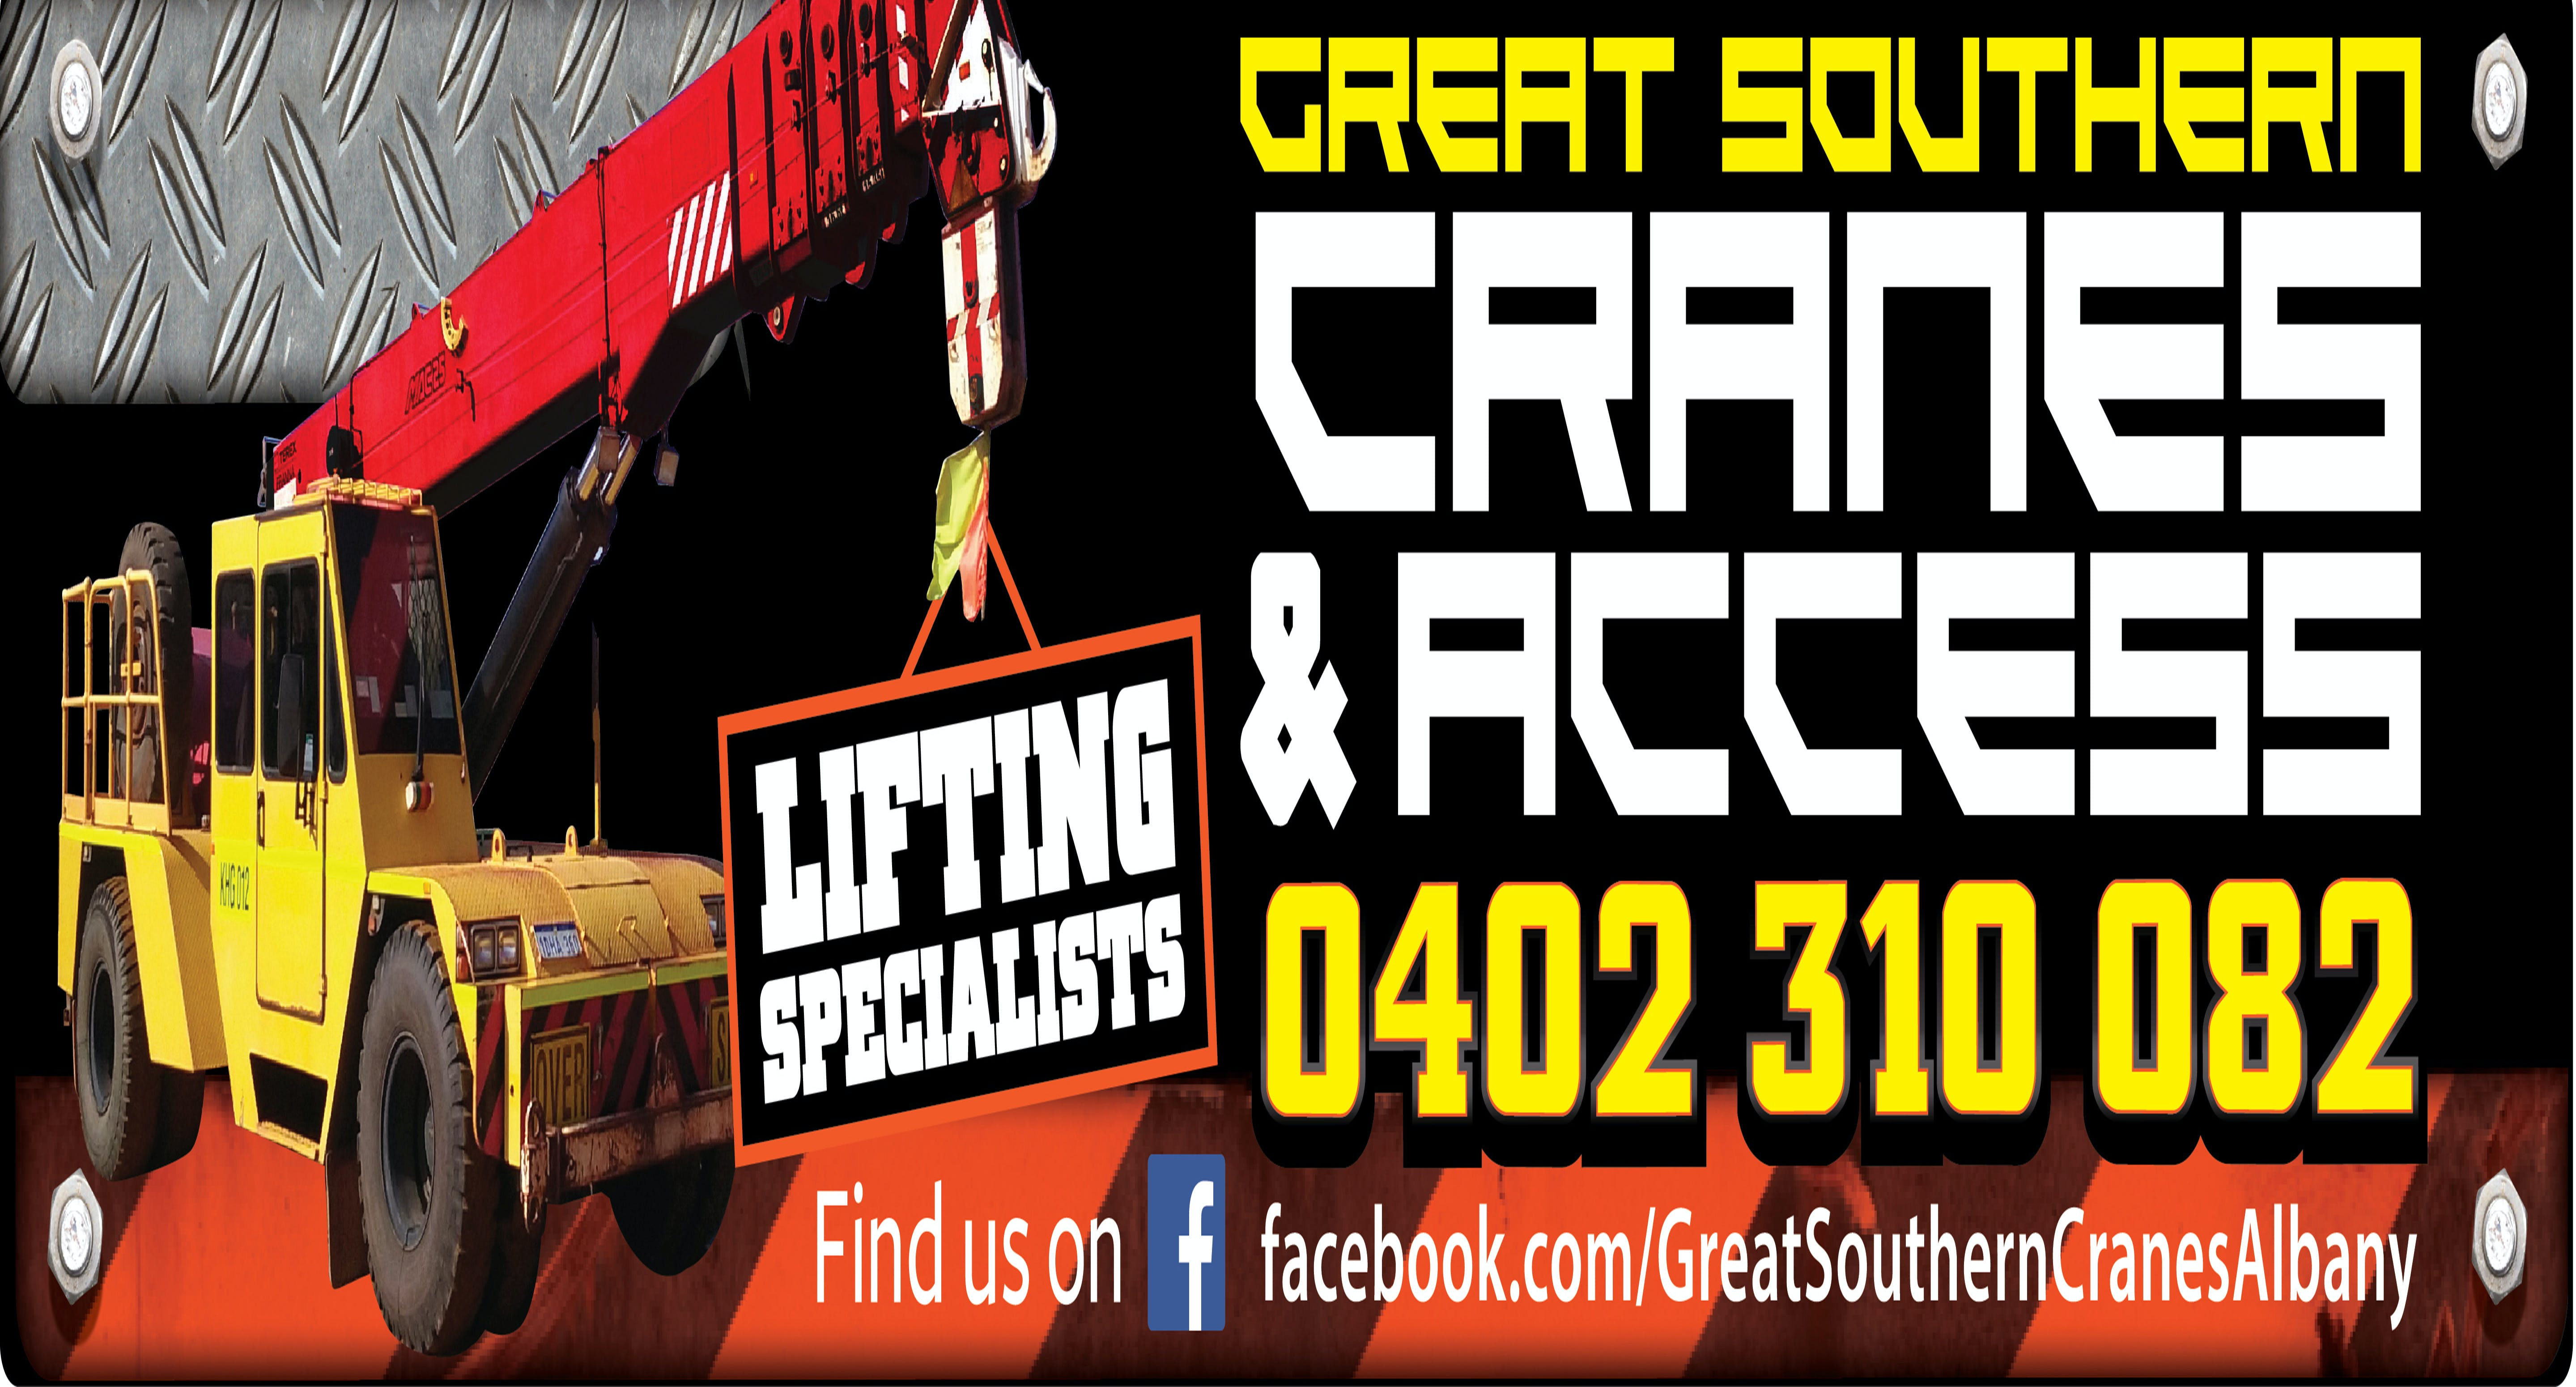 Great Southern Cranes & Access